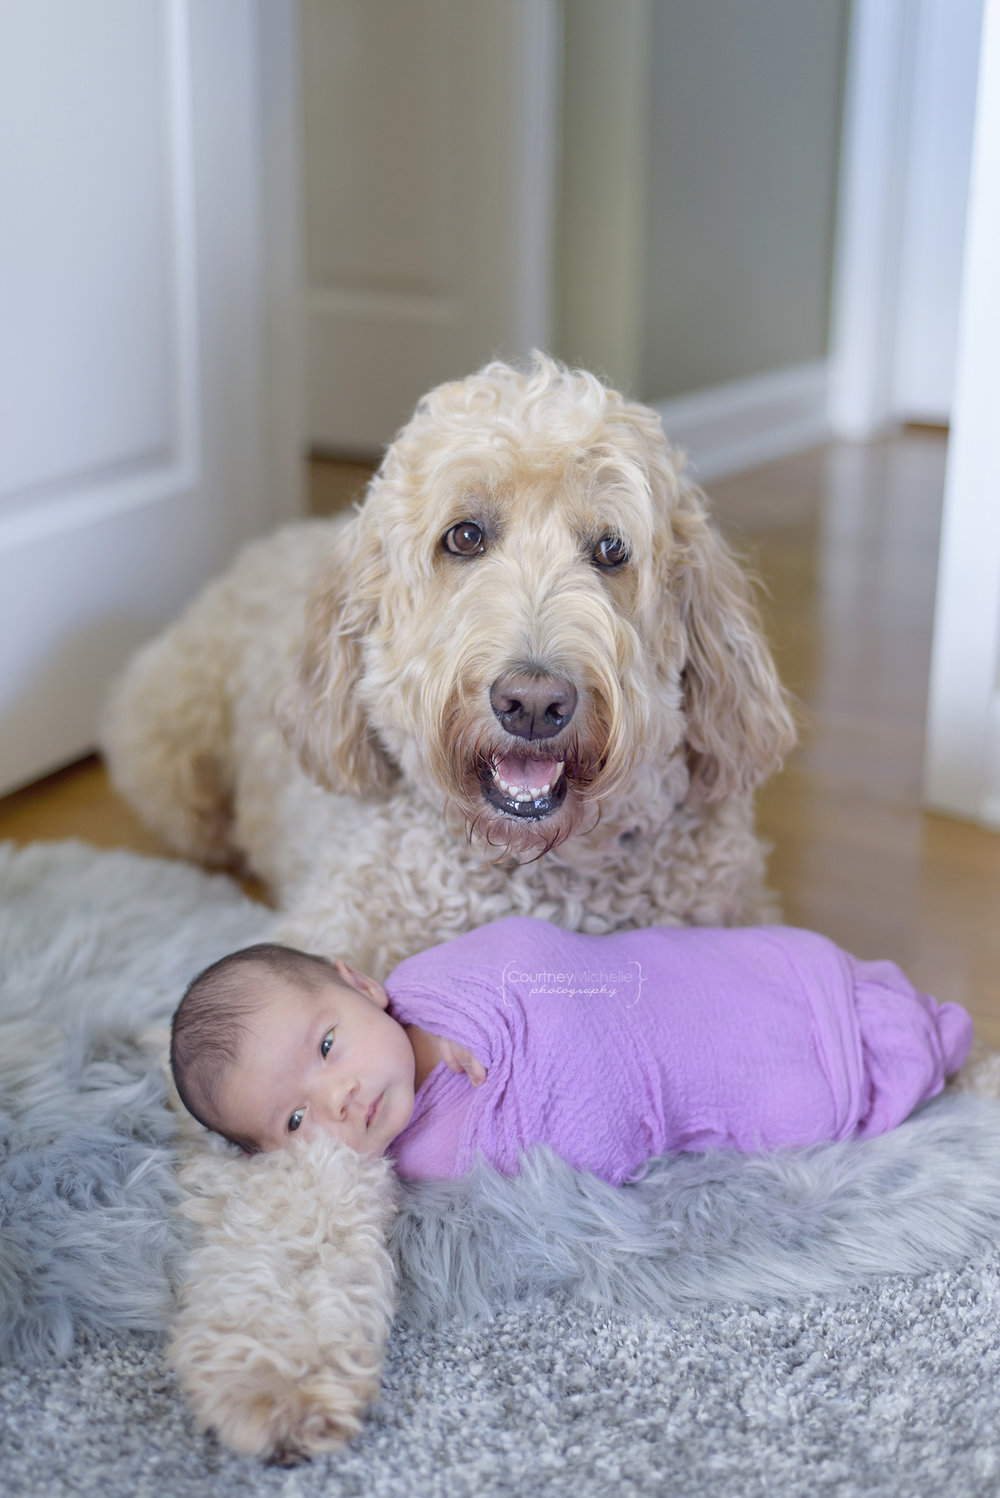 baby-and-goldendoodle-chicago-newborn-photographer-courtney-laper©COPYRIGHTCMP-edit-1878.jpg